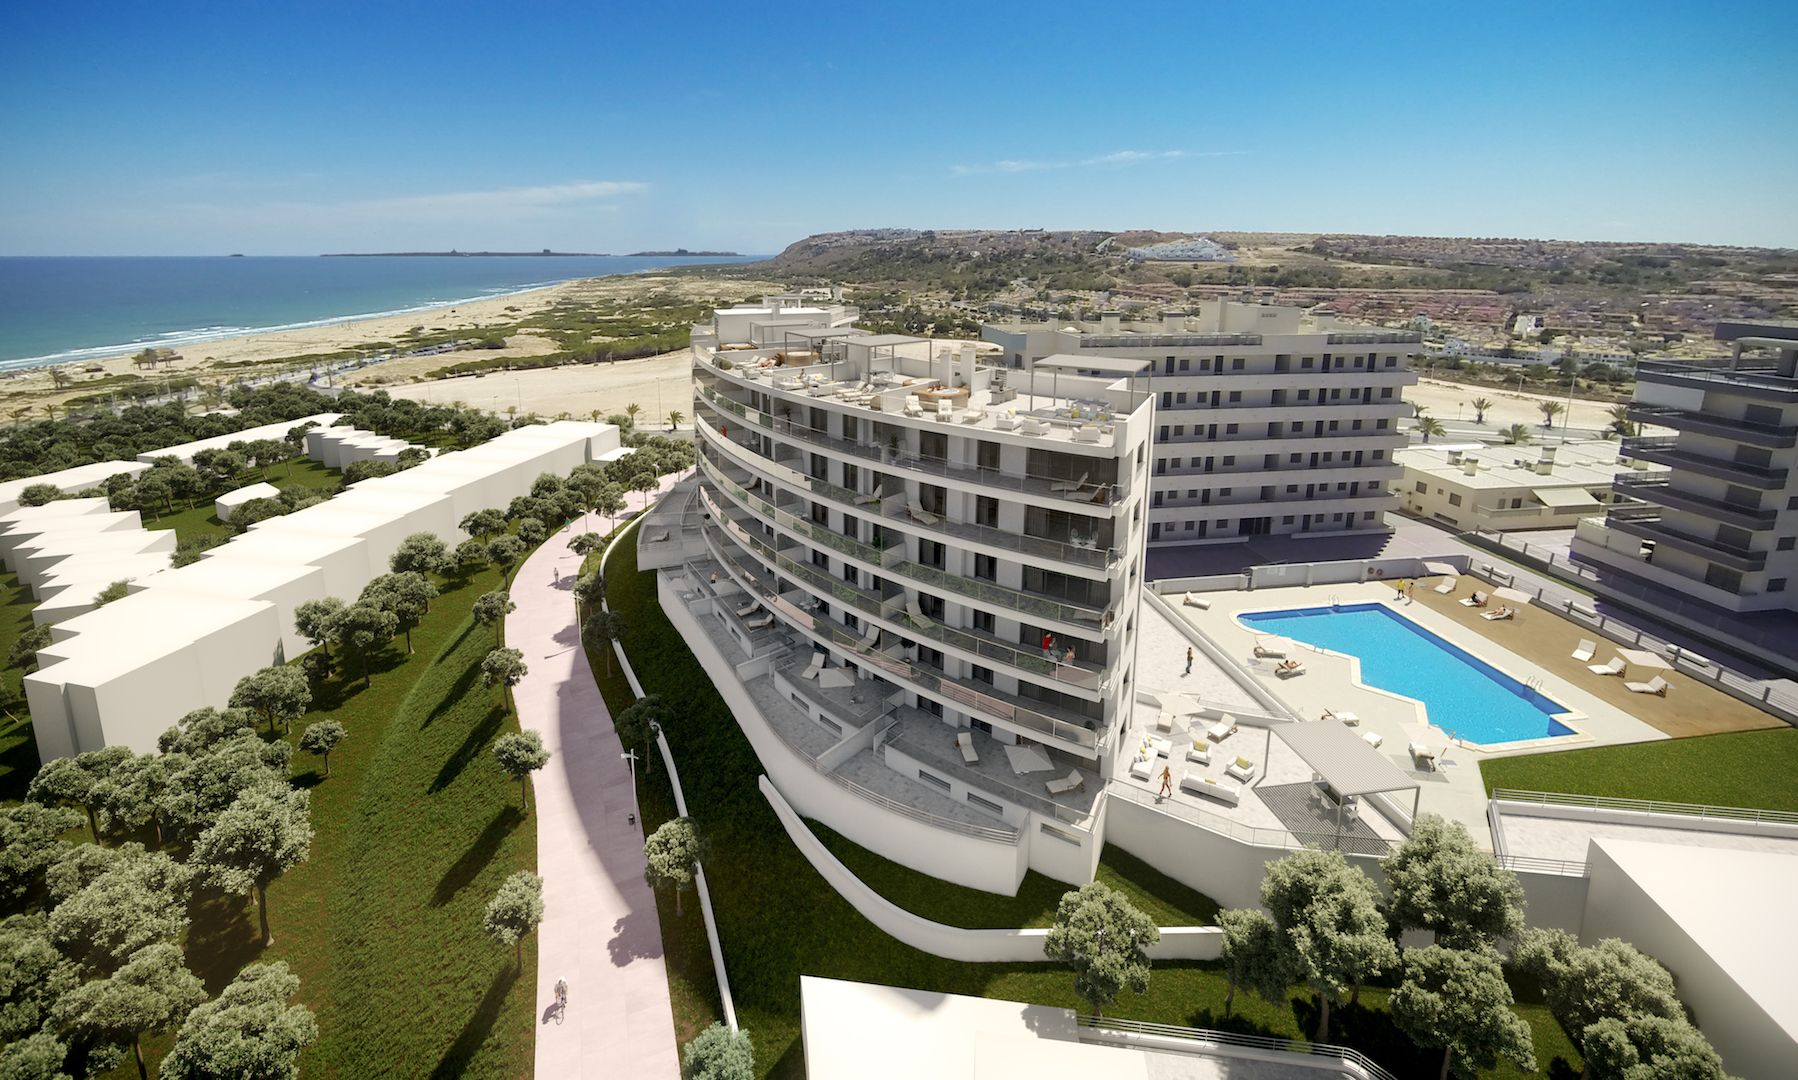 Flats and penthouses of 2, 3 and 4 bedrooms a few meters from the sea in Arenales del Sol. 18